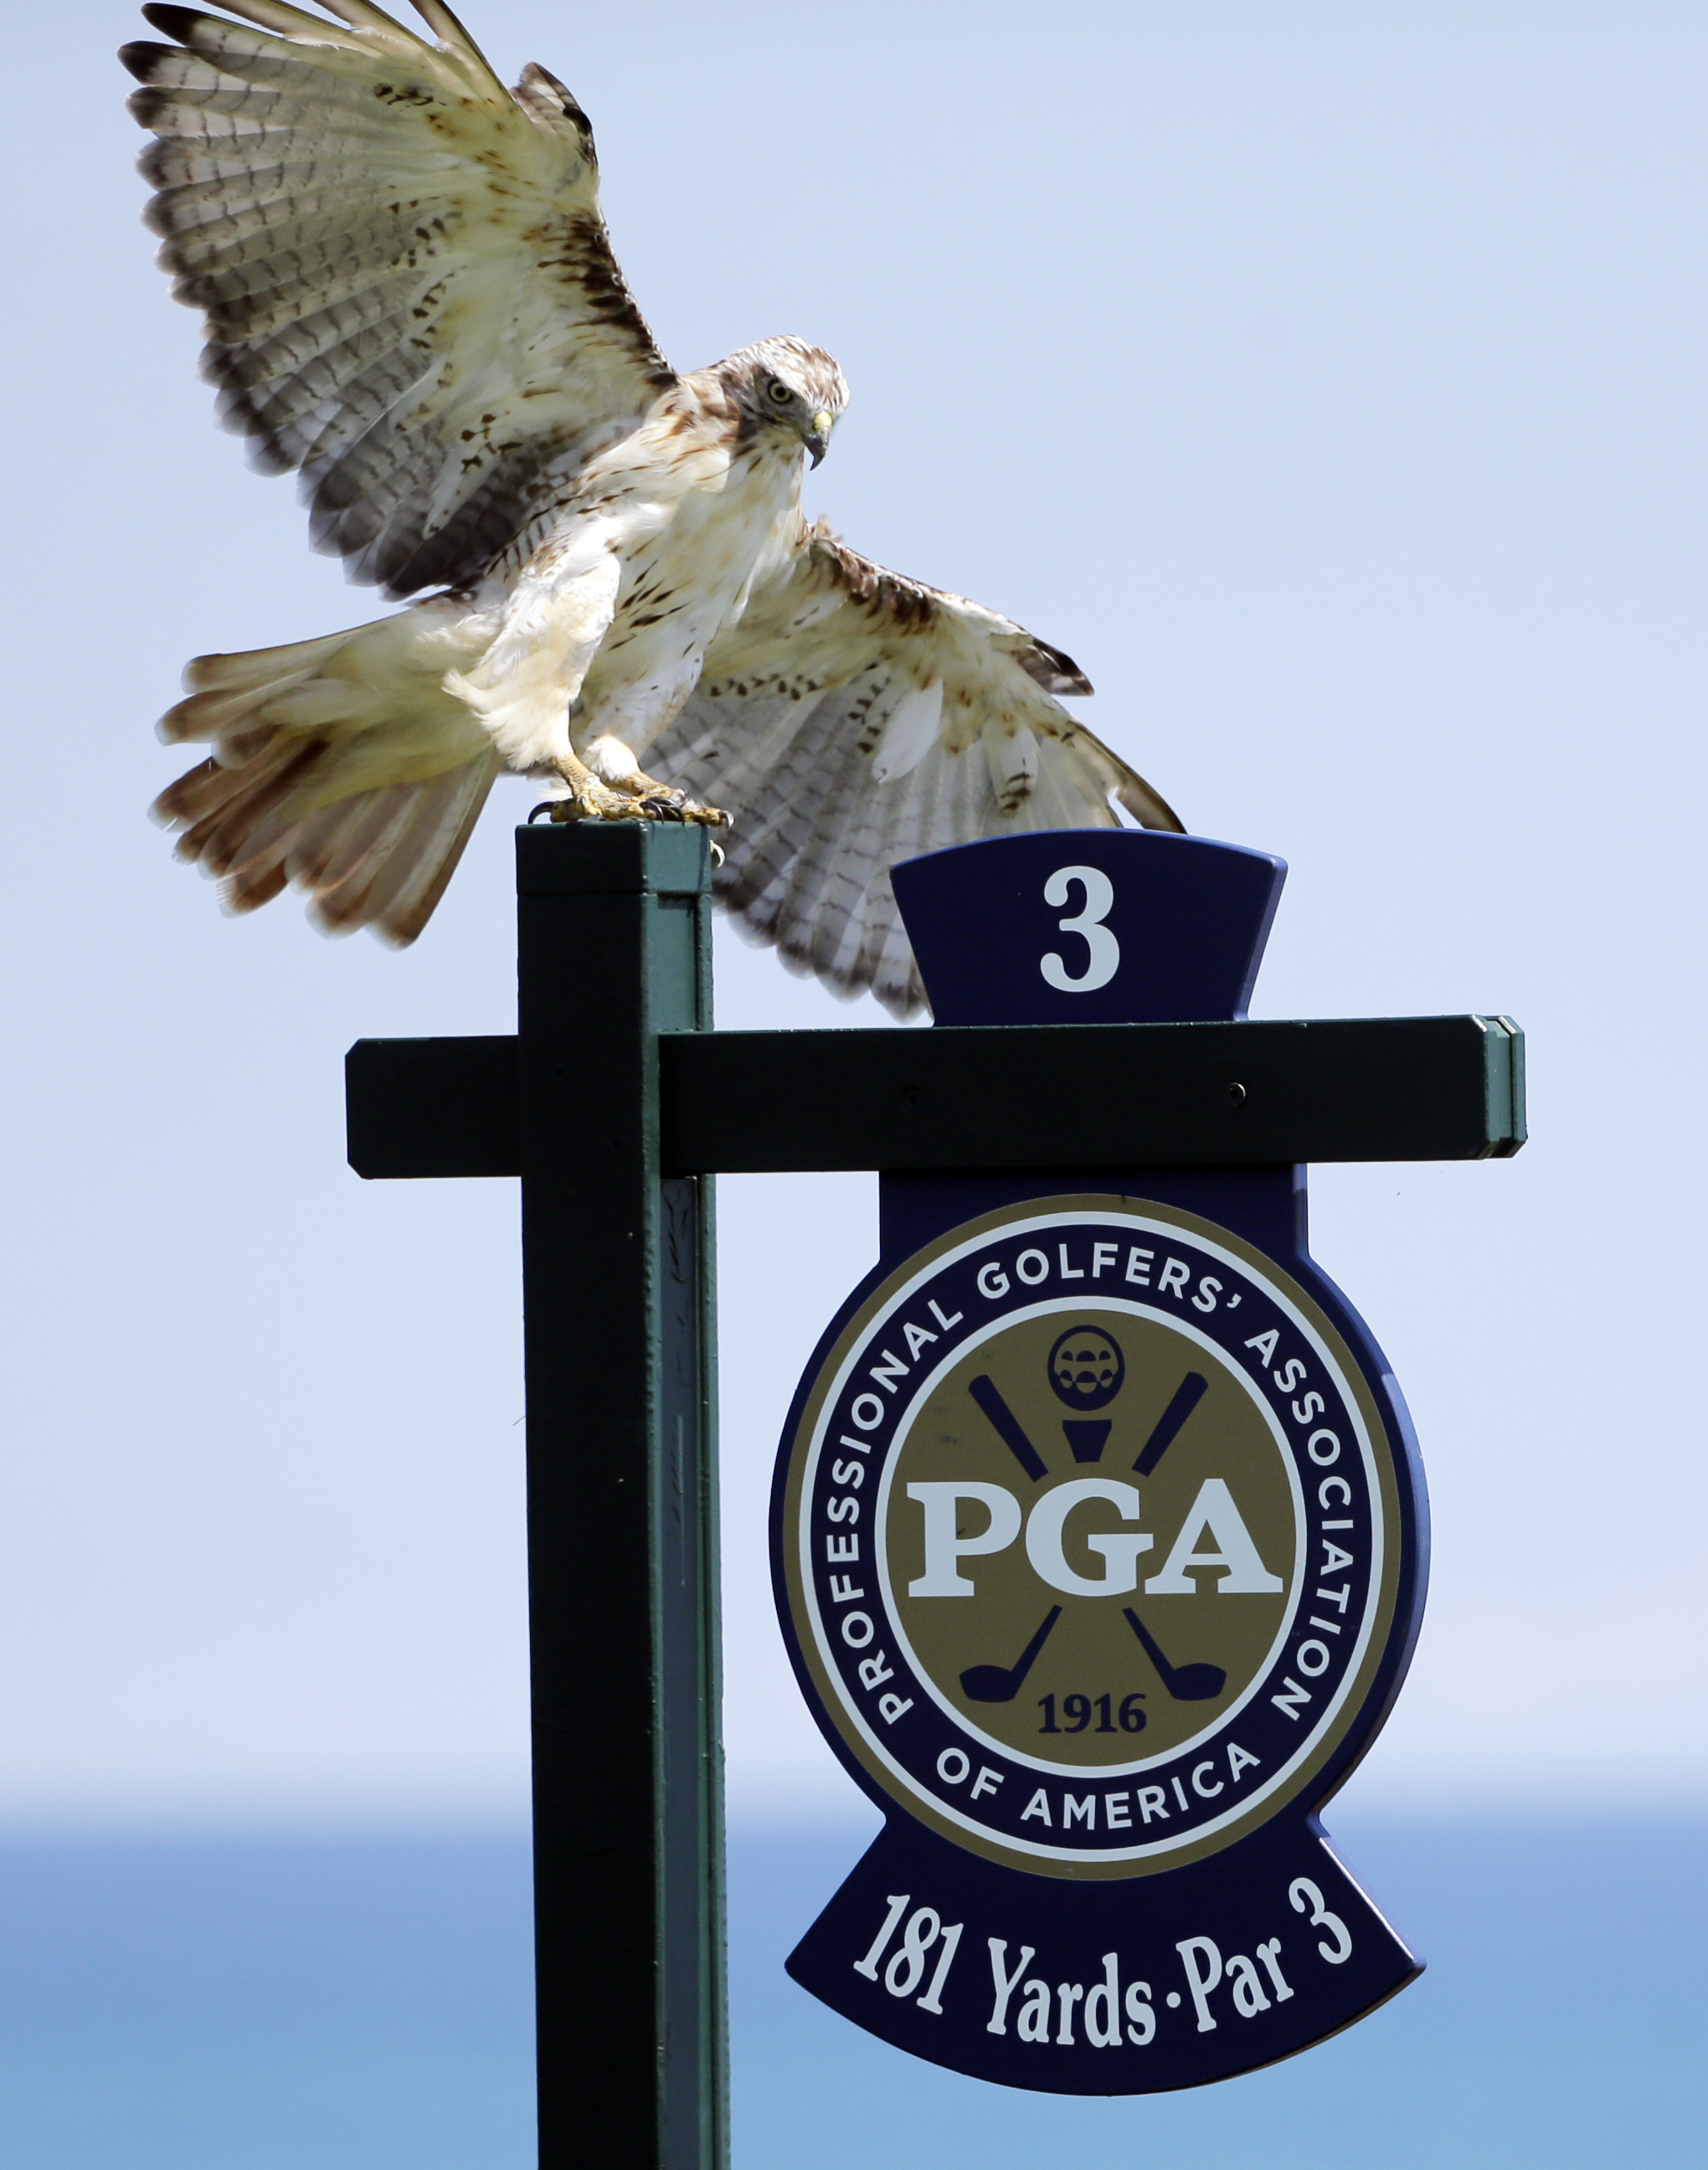 A bird lands on the third hole yardage marker during a practice round for the PGA Championship golf tournament Wednesday, Aug. 12, 2015, at Whistling Straits in Haven, Wis. (AP Photo/Jae Hong)